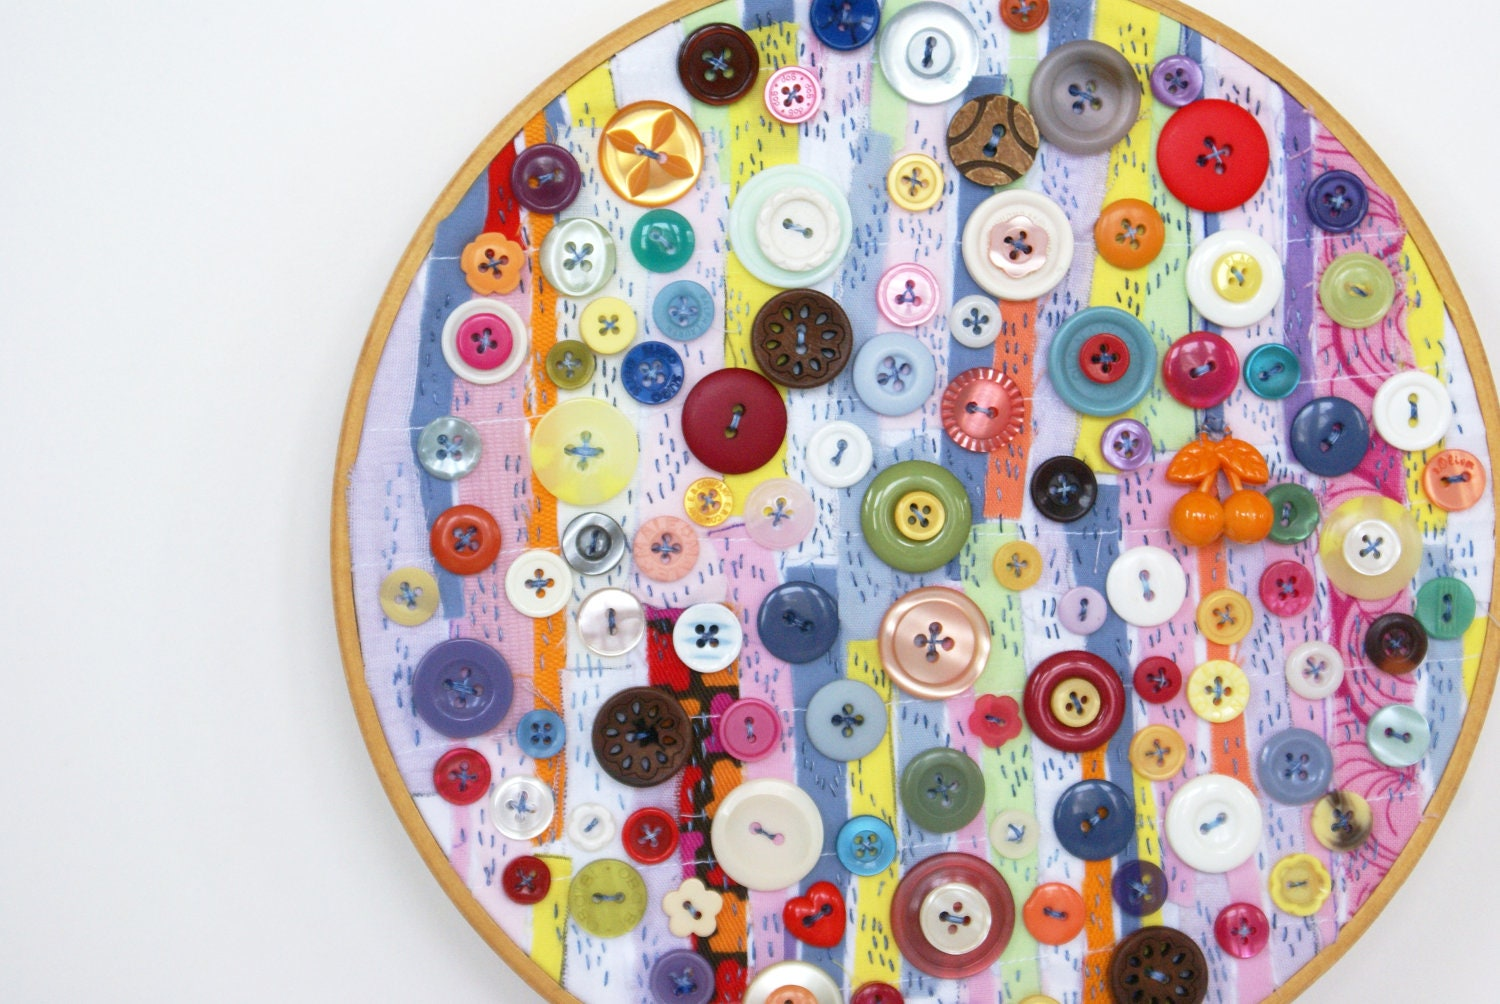 Upcycled embroidery hoop art textile and vintage button